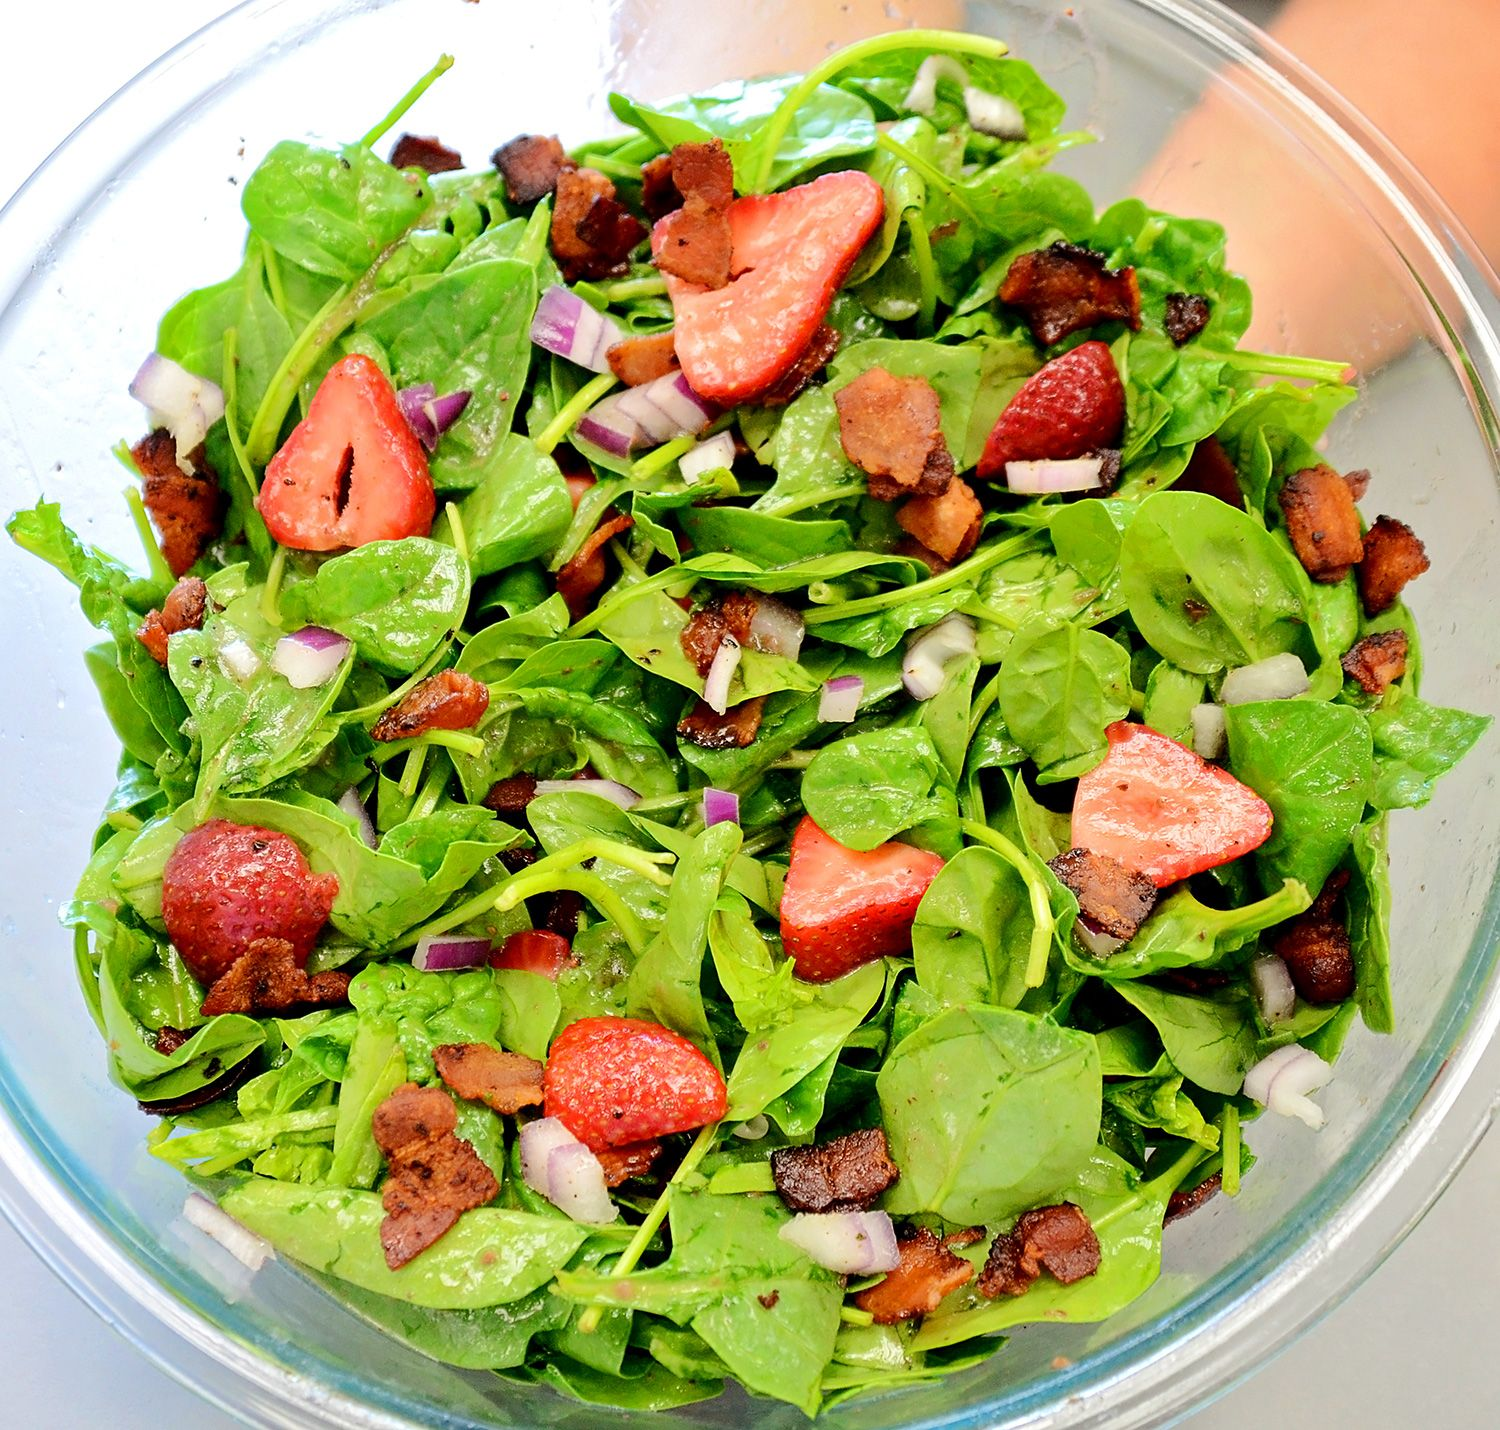 Simple Spinach Salad: Fresh organic spinach, sliced organic strawberries, chopped red onion, crispy fried bacon, toasted pecans. Top with Newman's Own Raspberry & Walnut Vinaigrette. Mix together and enjoy!